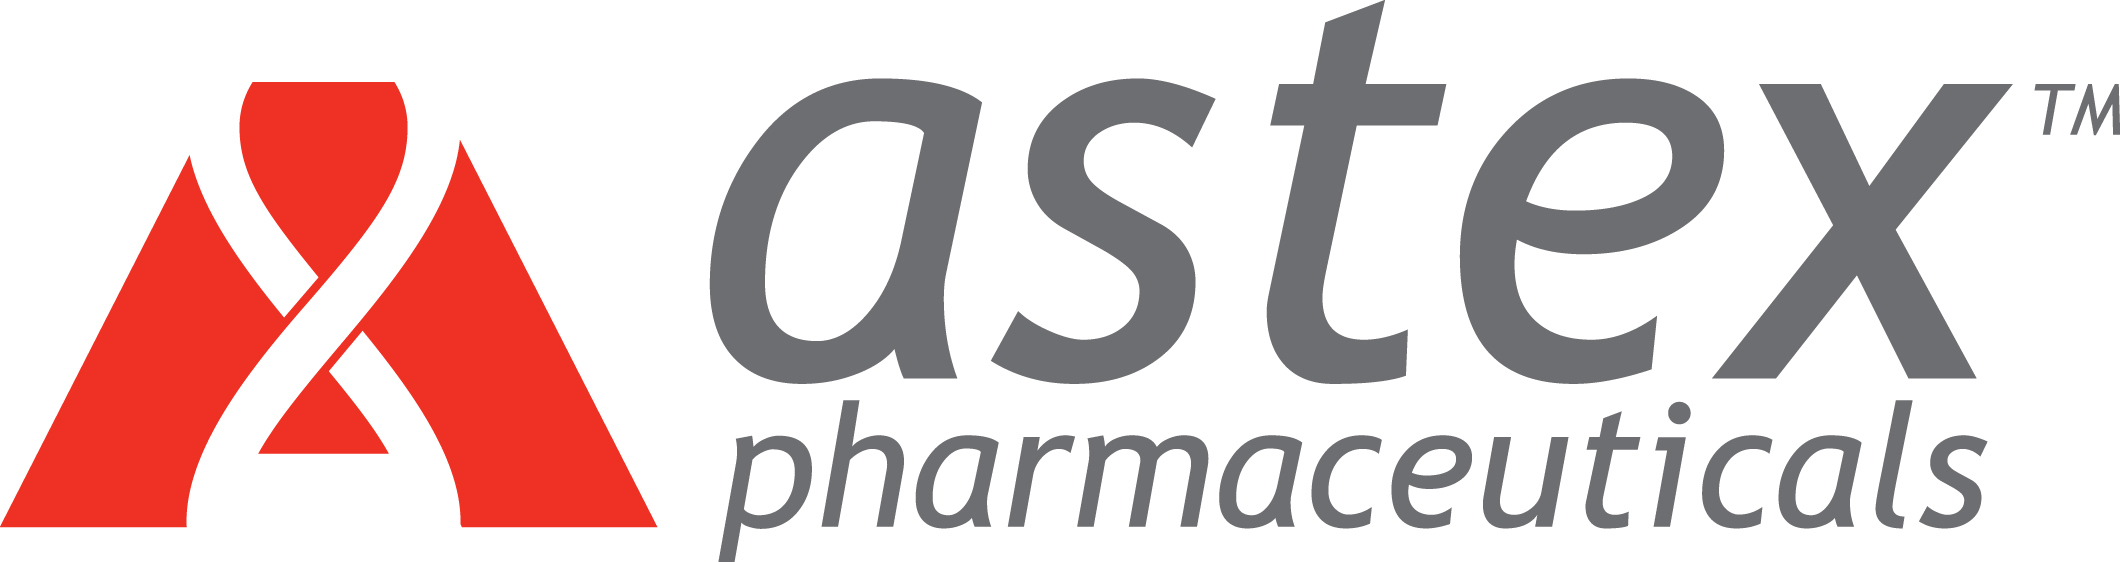 Astex Pharmaceuticals, Inc. logo